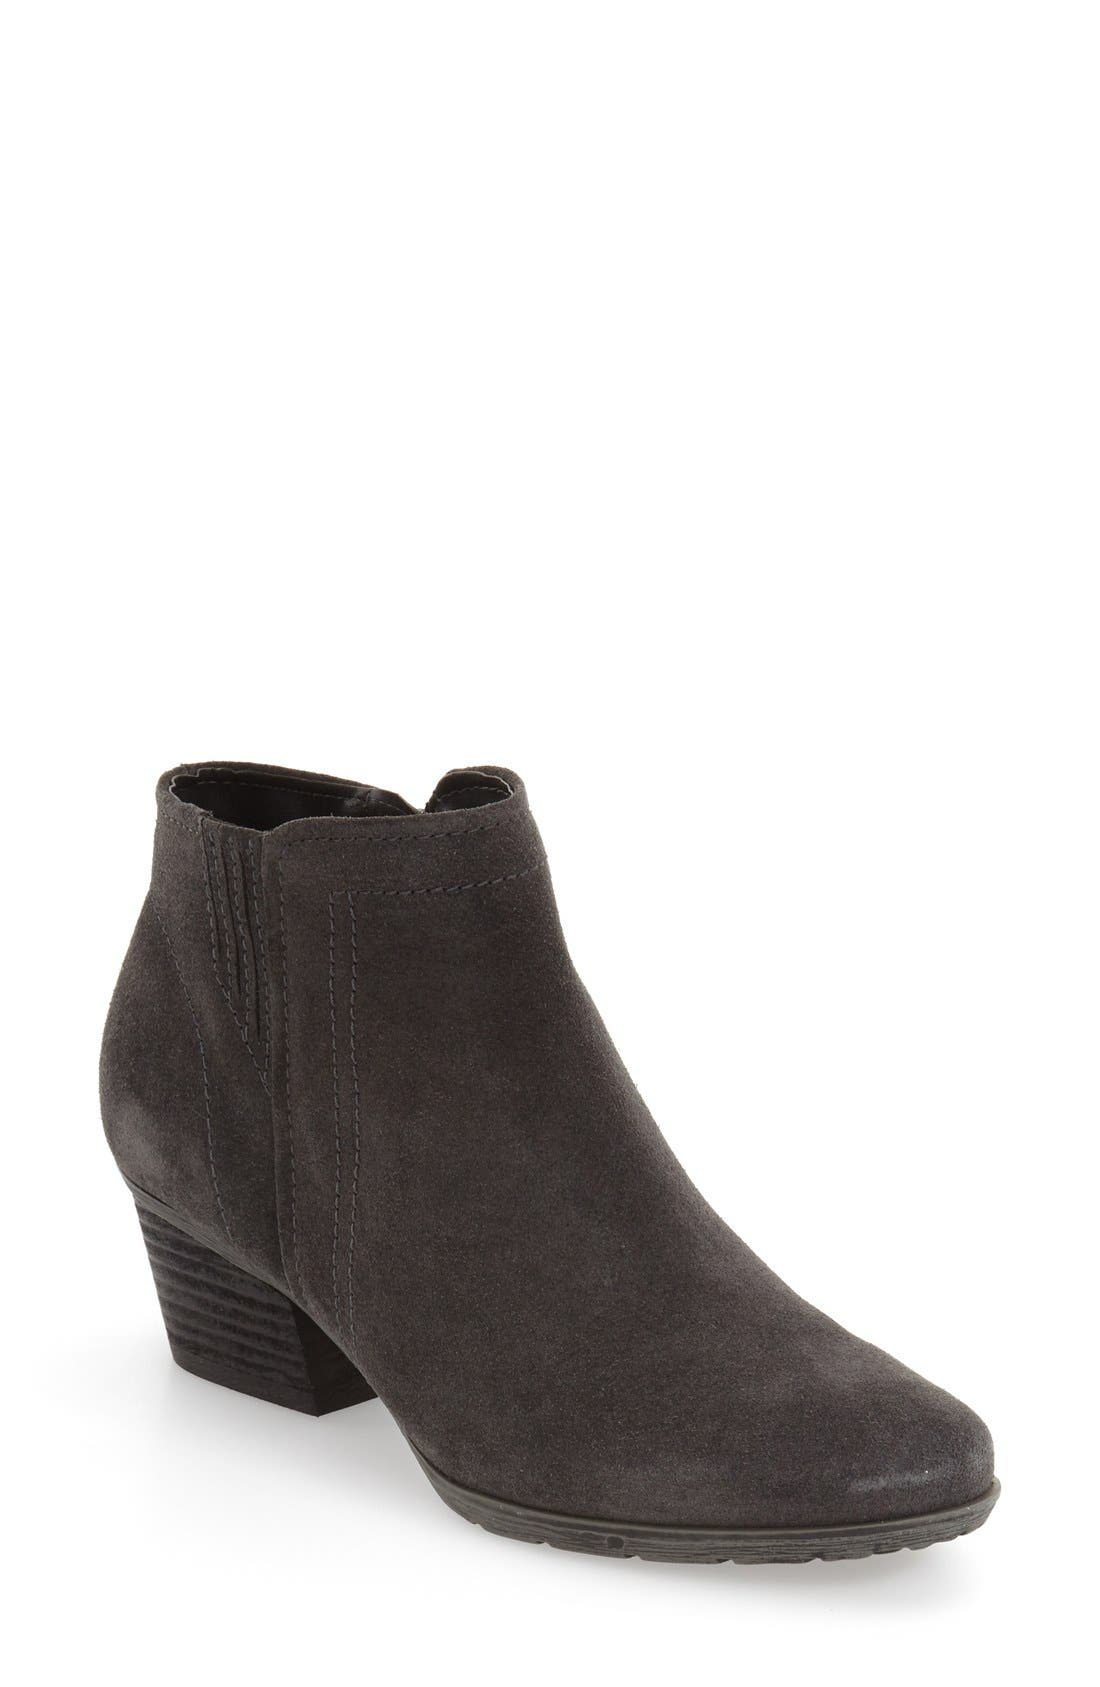 'Valli' Waterproof  Bootie,                             Main thumbnail 1, color,                             GREY SUEDE